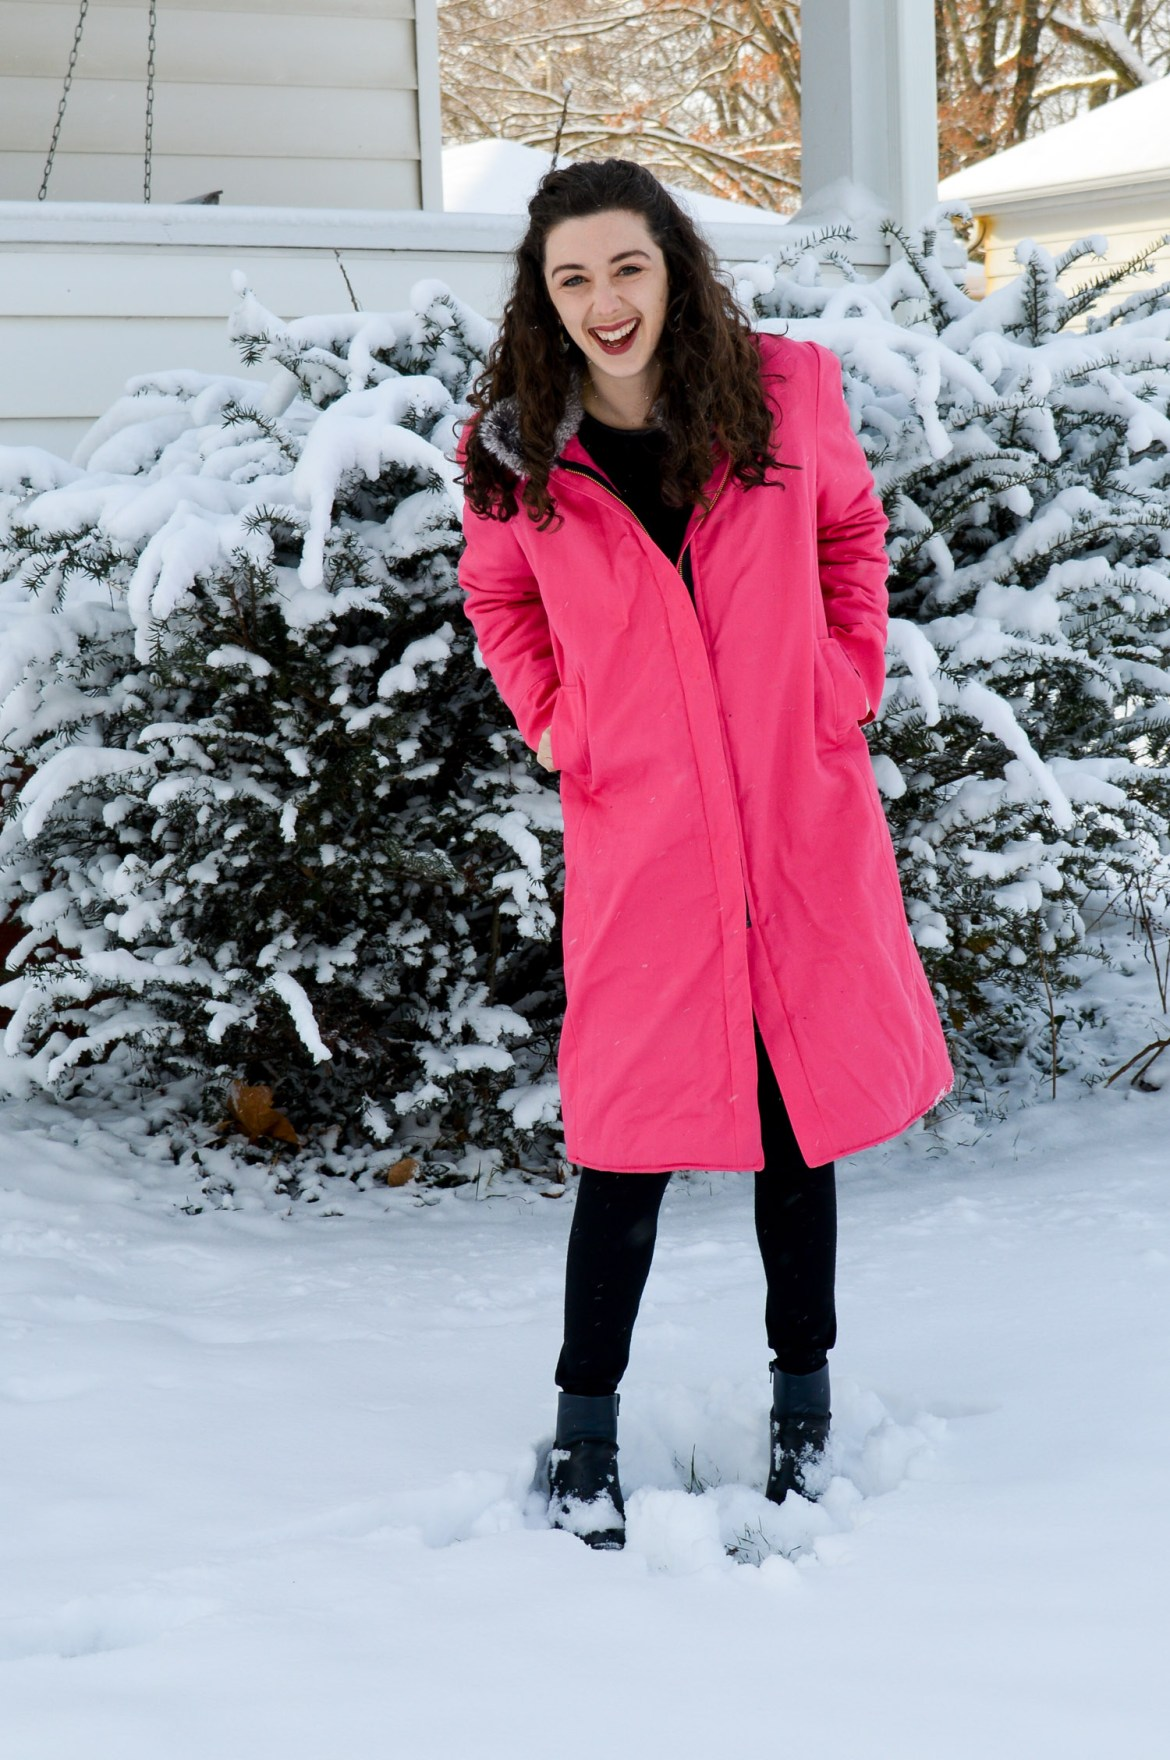 Brighten up gloomy winter days with a hot pink coat